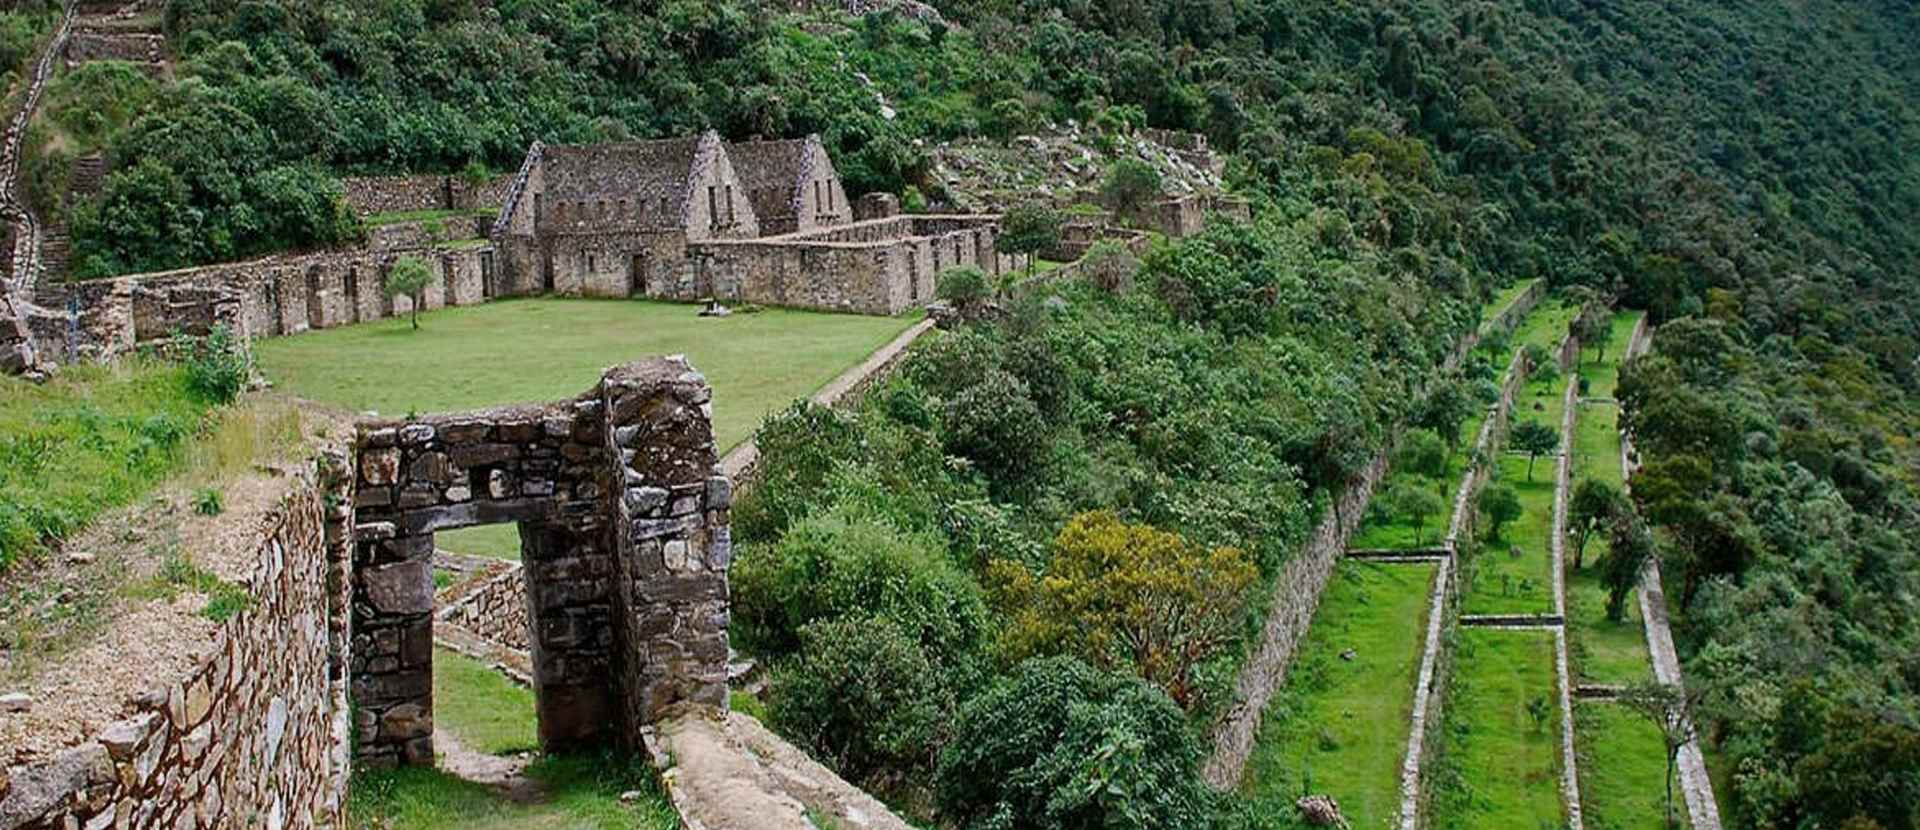 Reserva de Choquequirao Trek (Valle Sagrado) 4 dias - Inka Jungle Trek